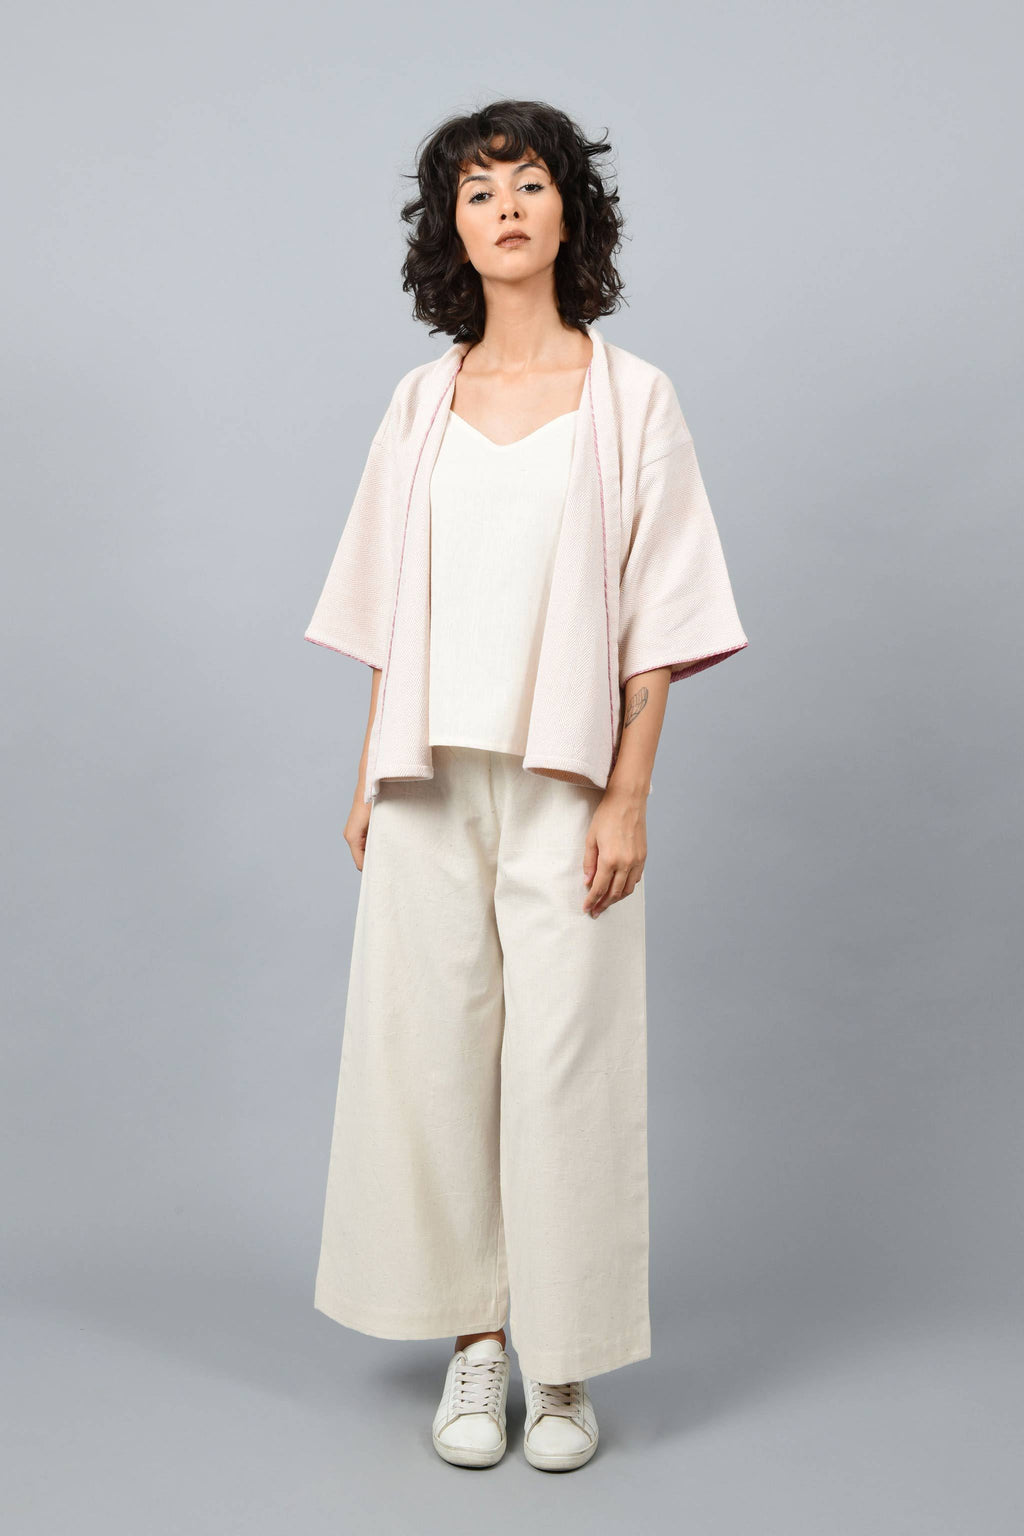 Model wearing anti-fit short peach shrug made in pointed twill with handspun and handwoven khadi cotton. Paired with off-white spaghetti, palazzos and white shoes.